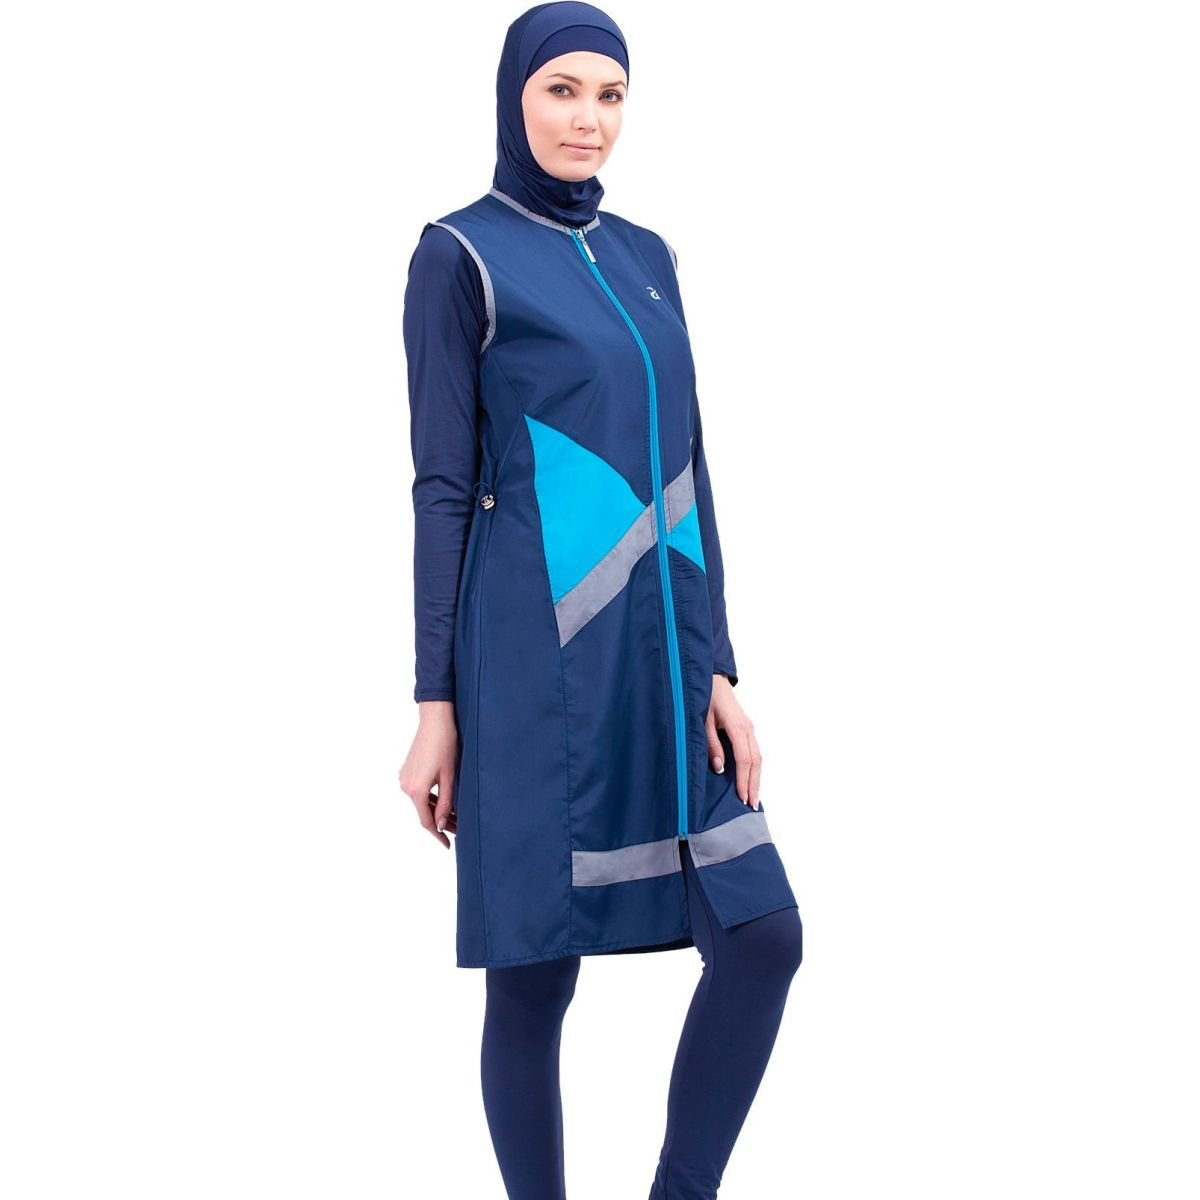 Argisa 7118 Jileli The Tights Long Plus Size Full Hijab SWIMWEAR 3XL-5XL Muslim Hijab Islamic Swimsuit Burkini Turkey Full Cover Swim